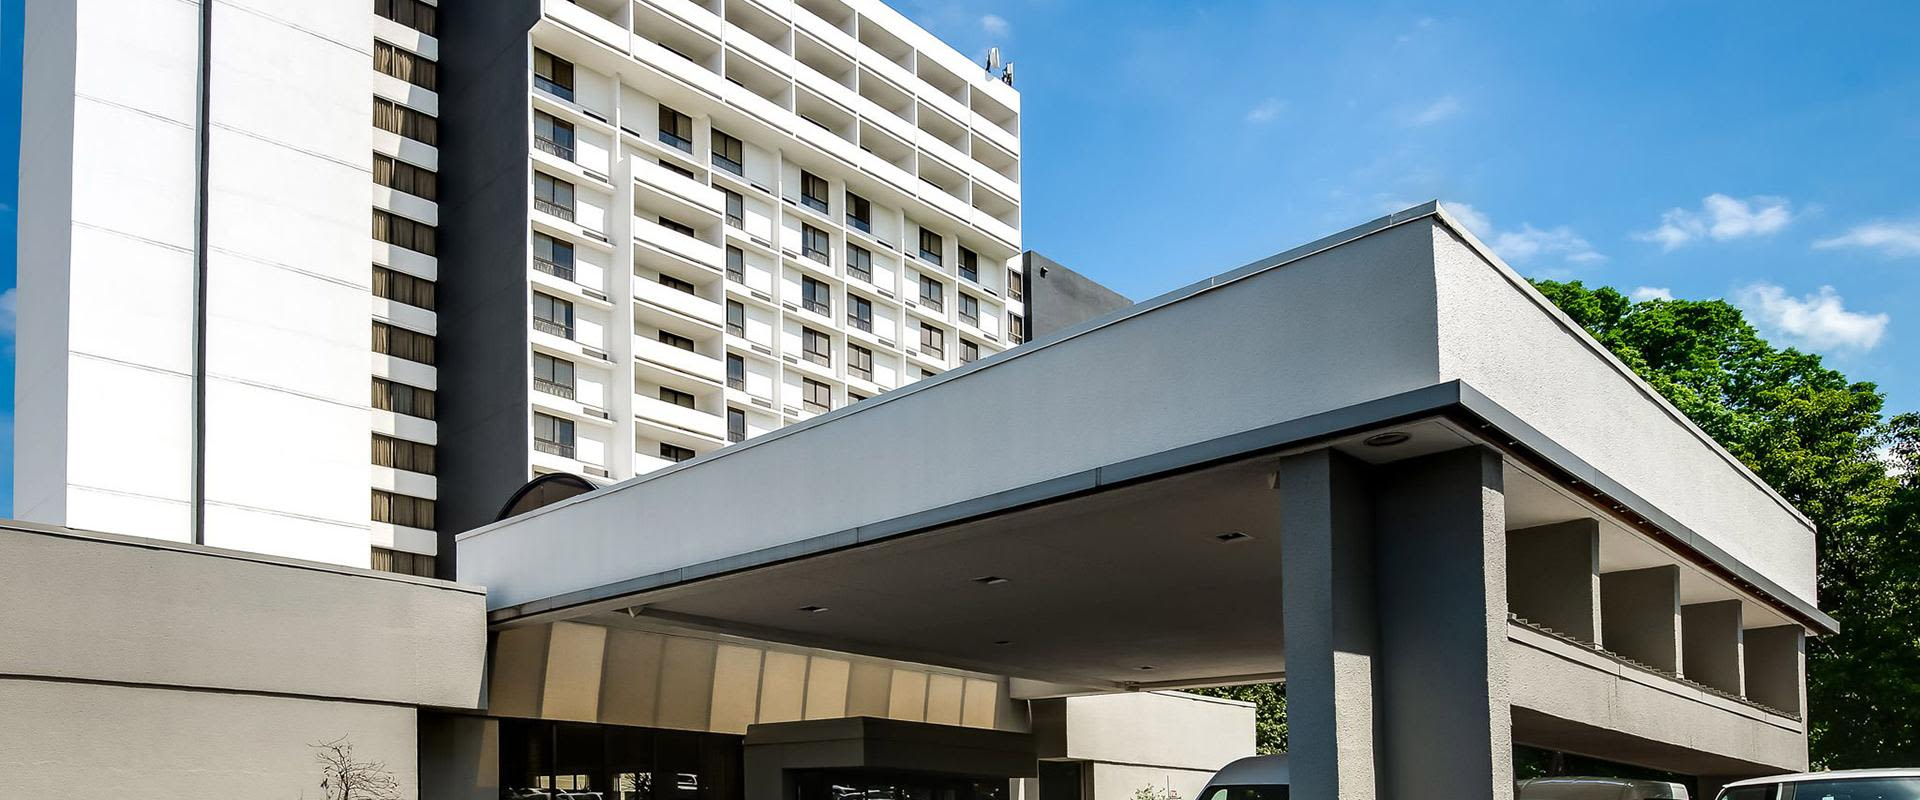 Charlotte NC Hotel Front Exterior of Building